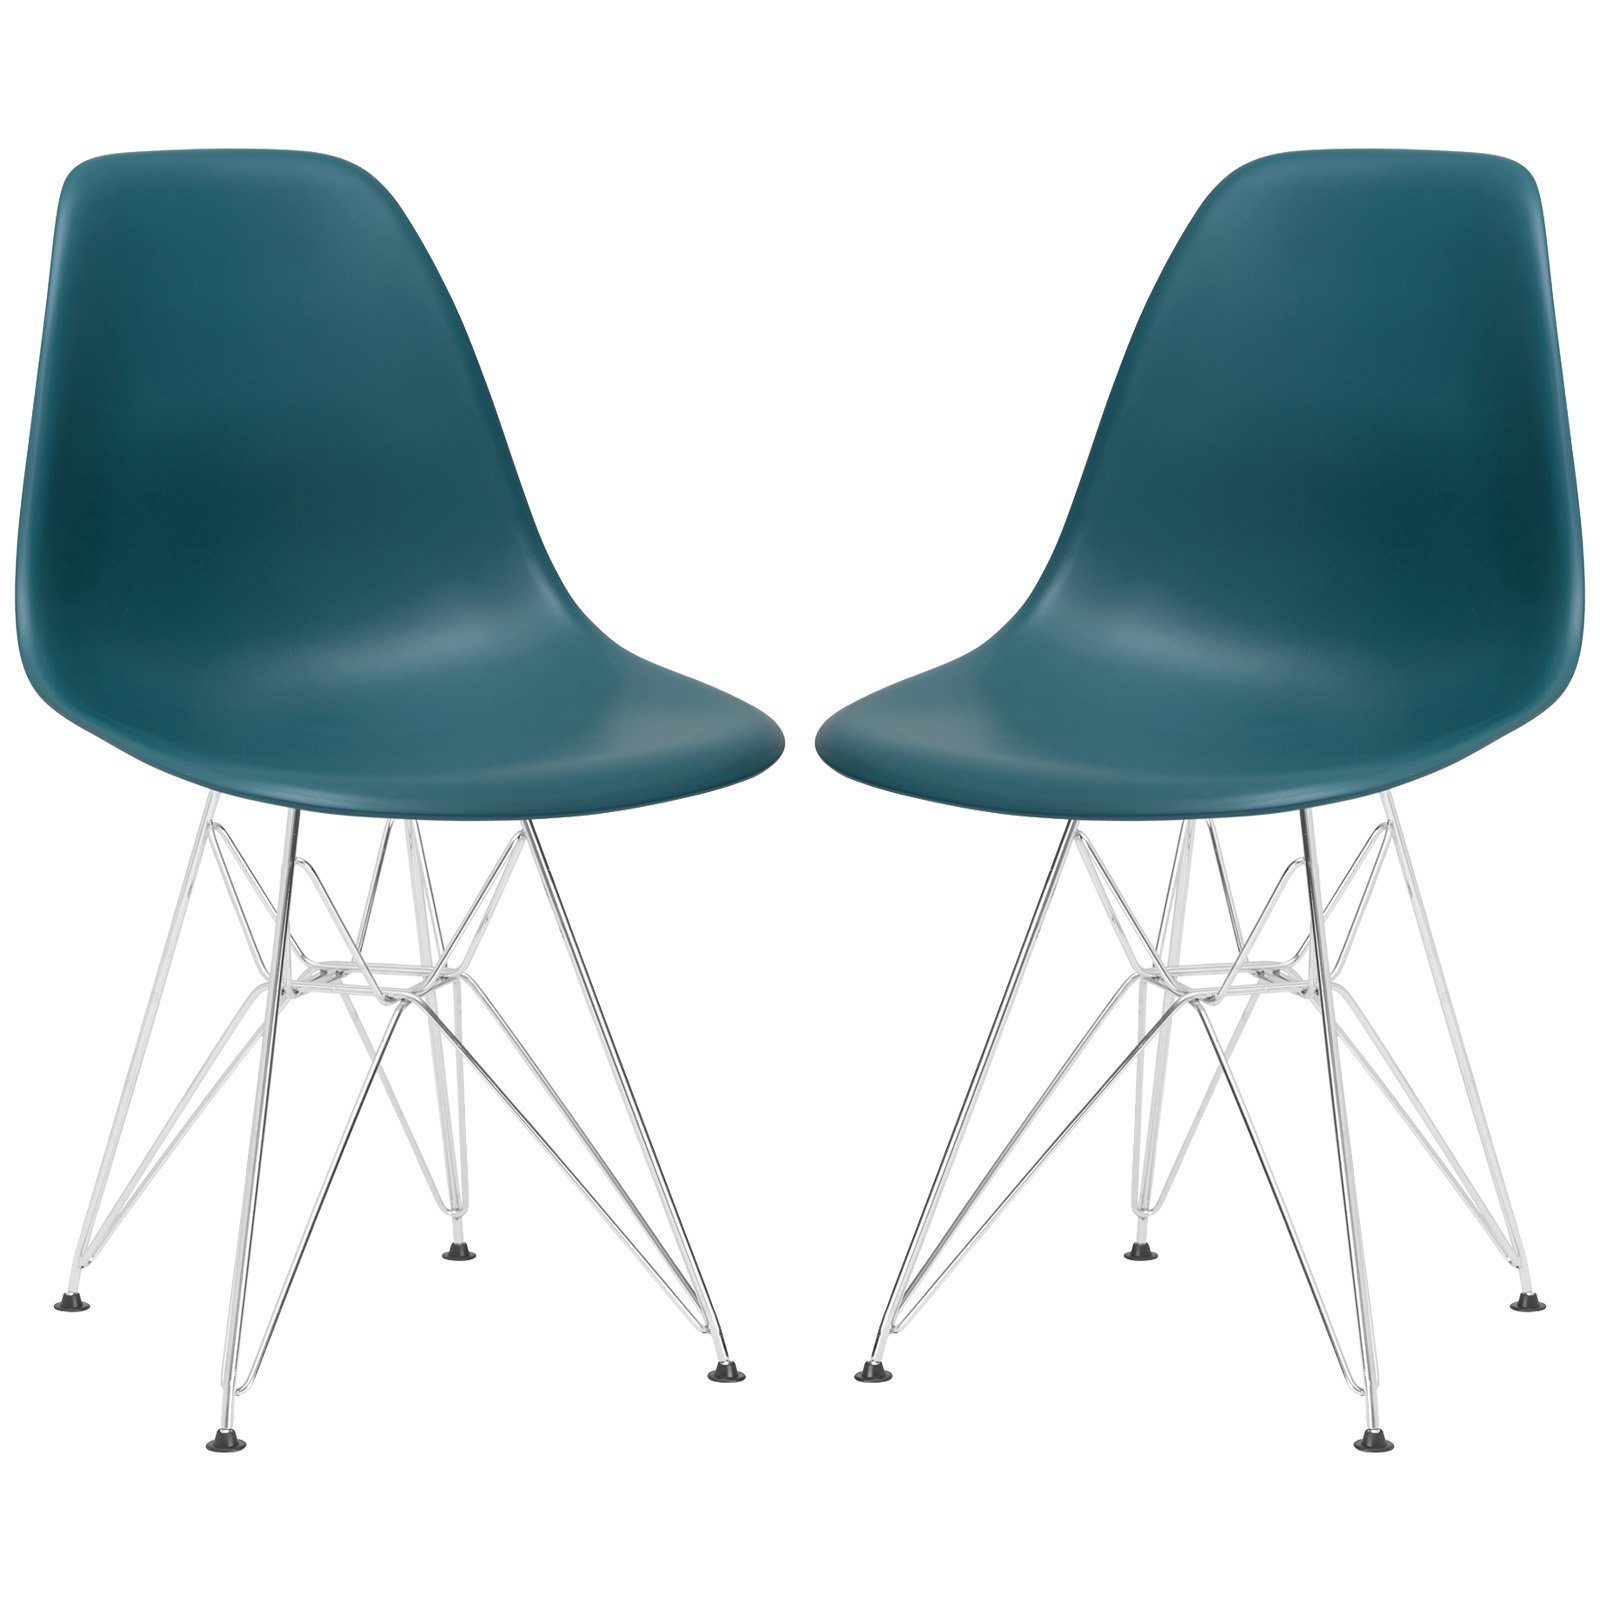 EdgeMod Padget Side Chair with Chrome Legs - Set of 2